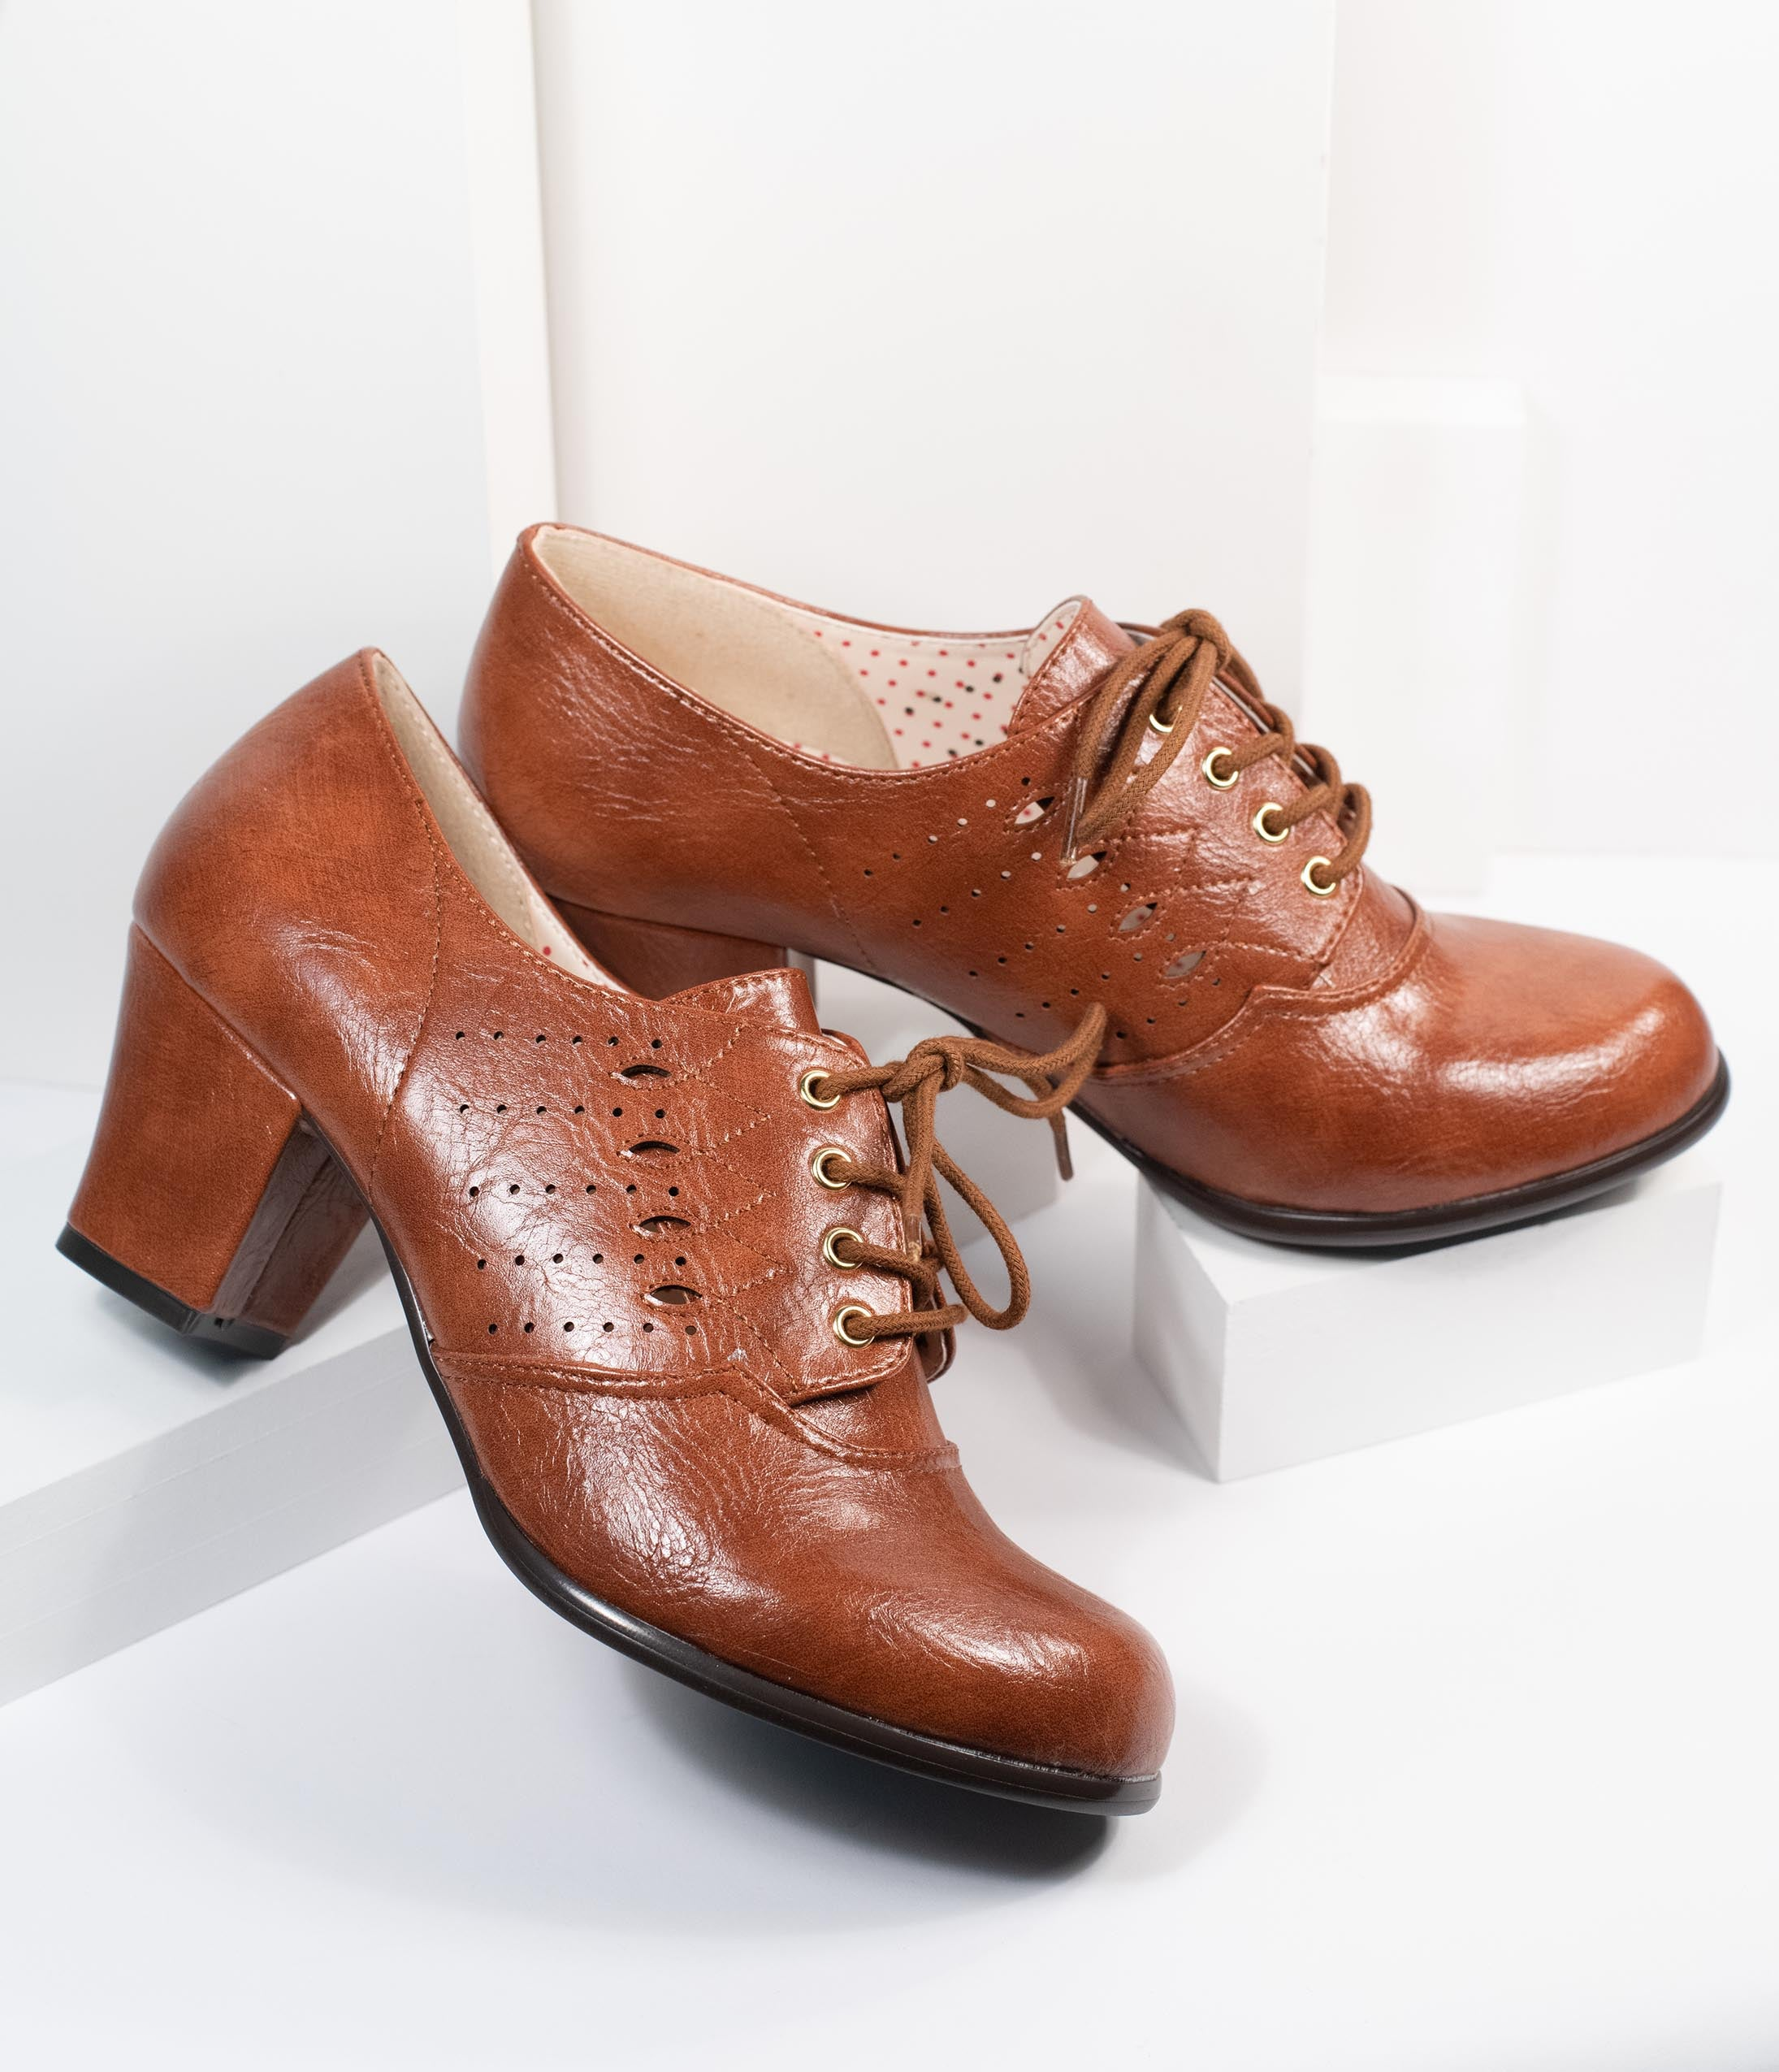 Vintage Shoes, Vintage Style Shoes B.a.i.t. Tan Leatherette Rosie Oxford Heel $74.00 AT vintagedancer.com